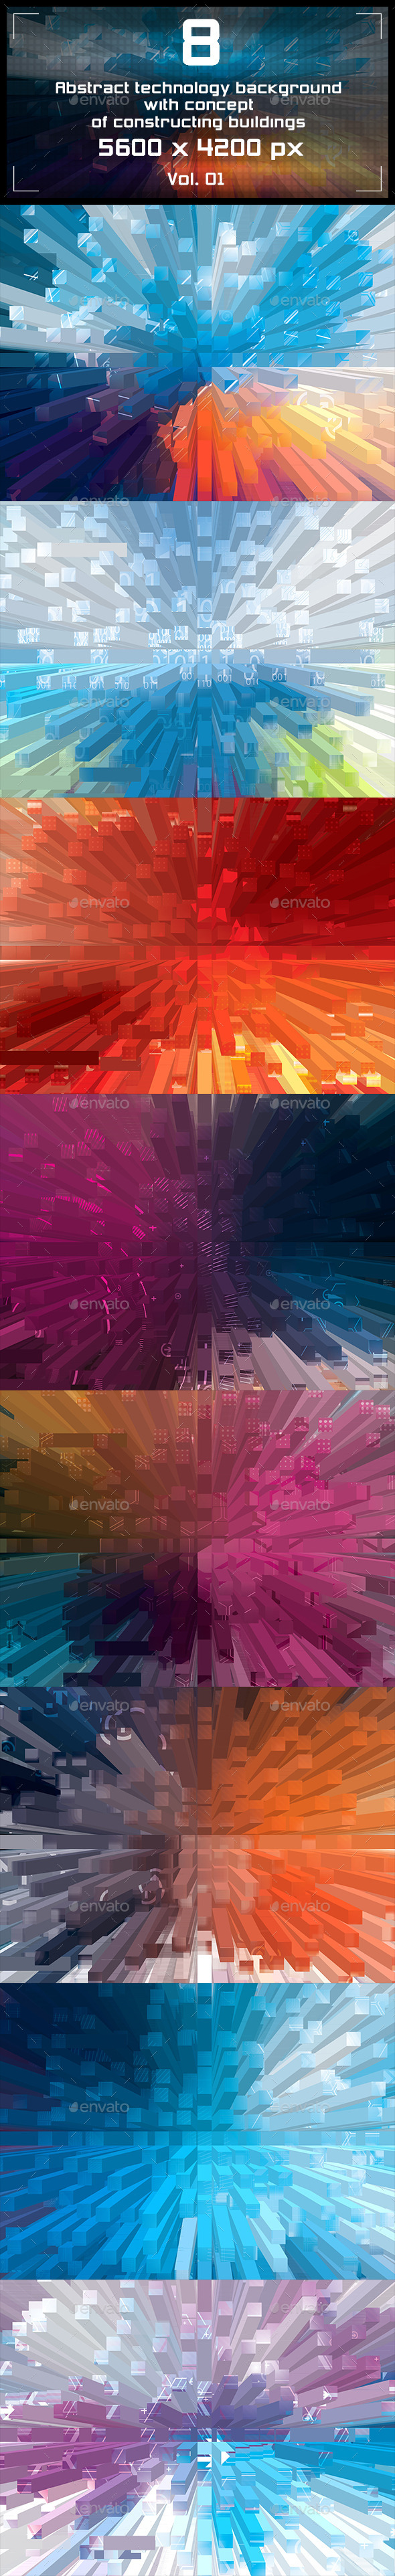 Abstract Technology Backgrounds - Tech / Futuristic Backgrounds